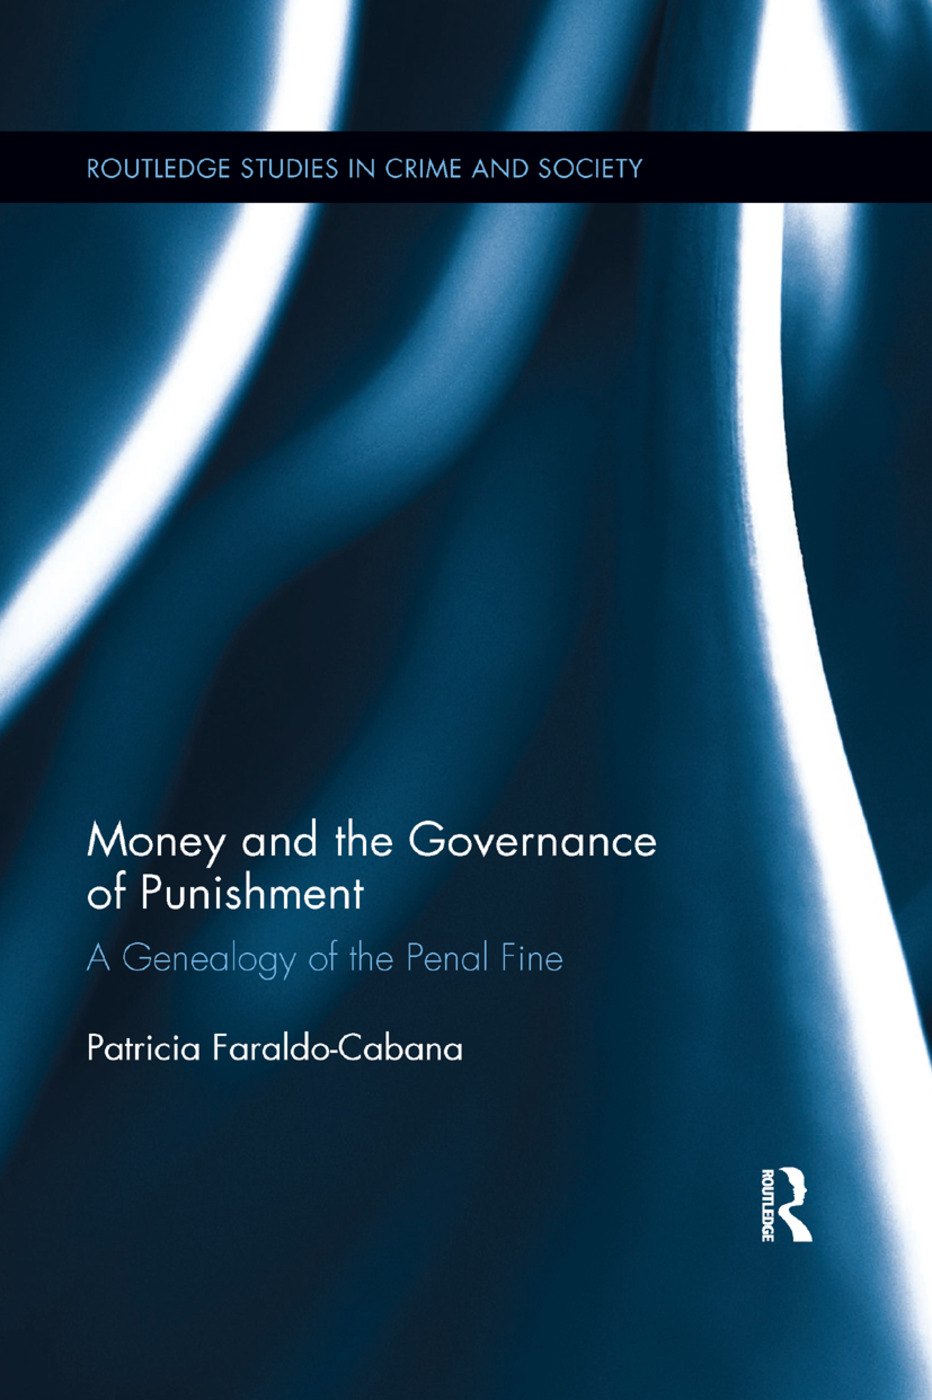 Money and the Governance of Punishment: A Genealogy of the Penal Fine book cover